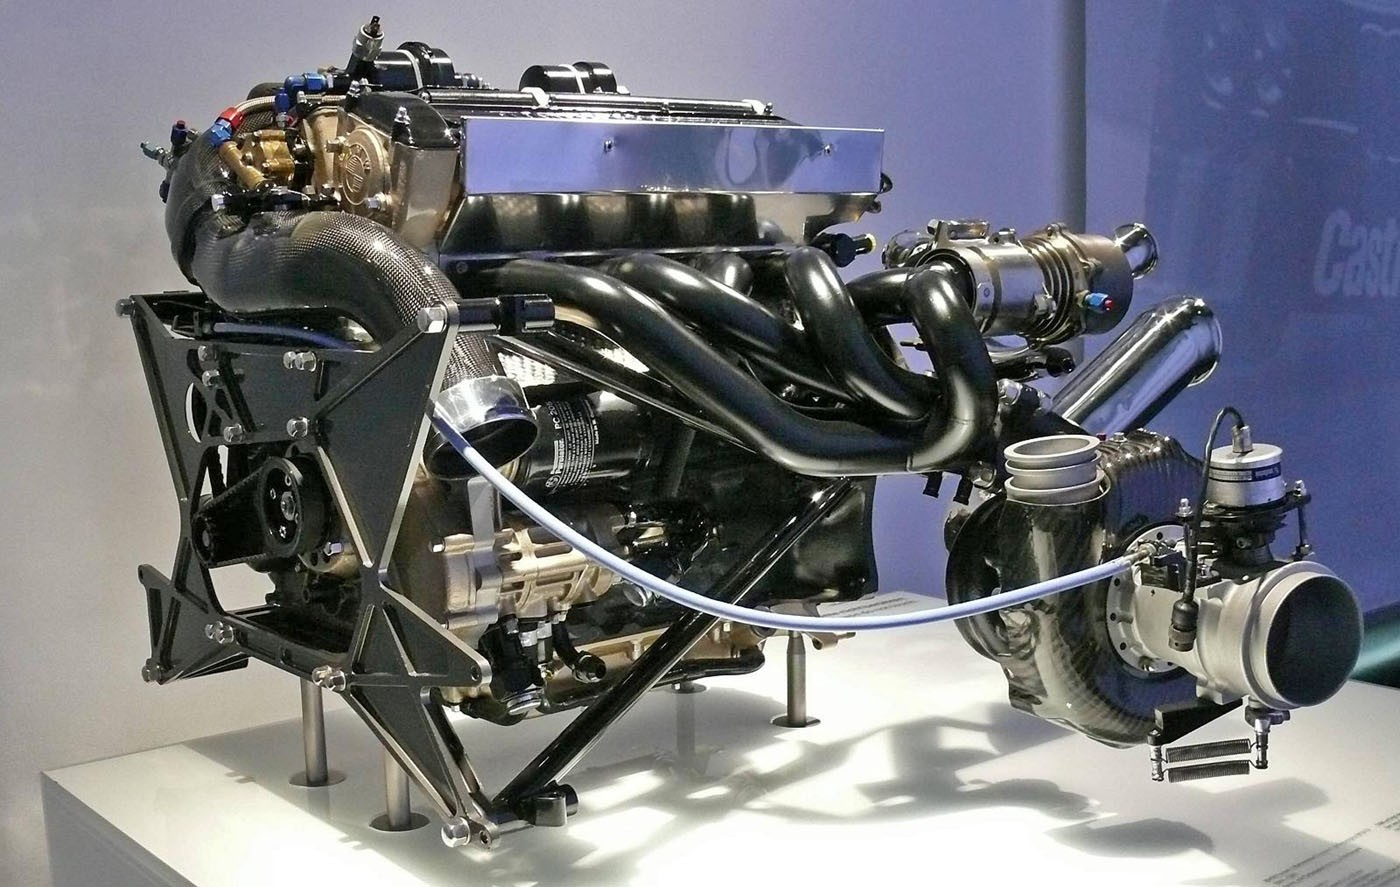 The M10 Bmws Most Successful Engine Bmw M20 Diagram Name M12 13 Views 21368 Size 2519 Kb